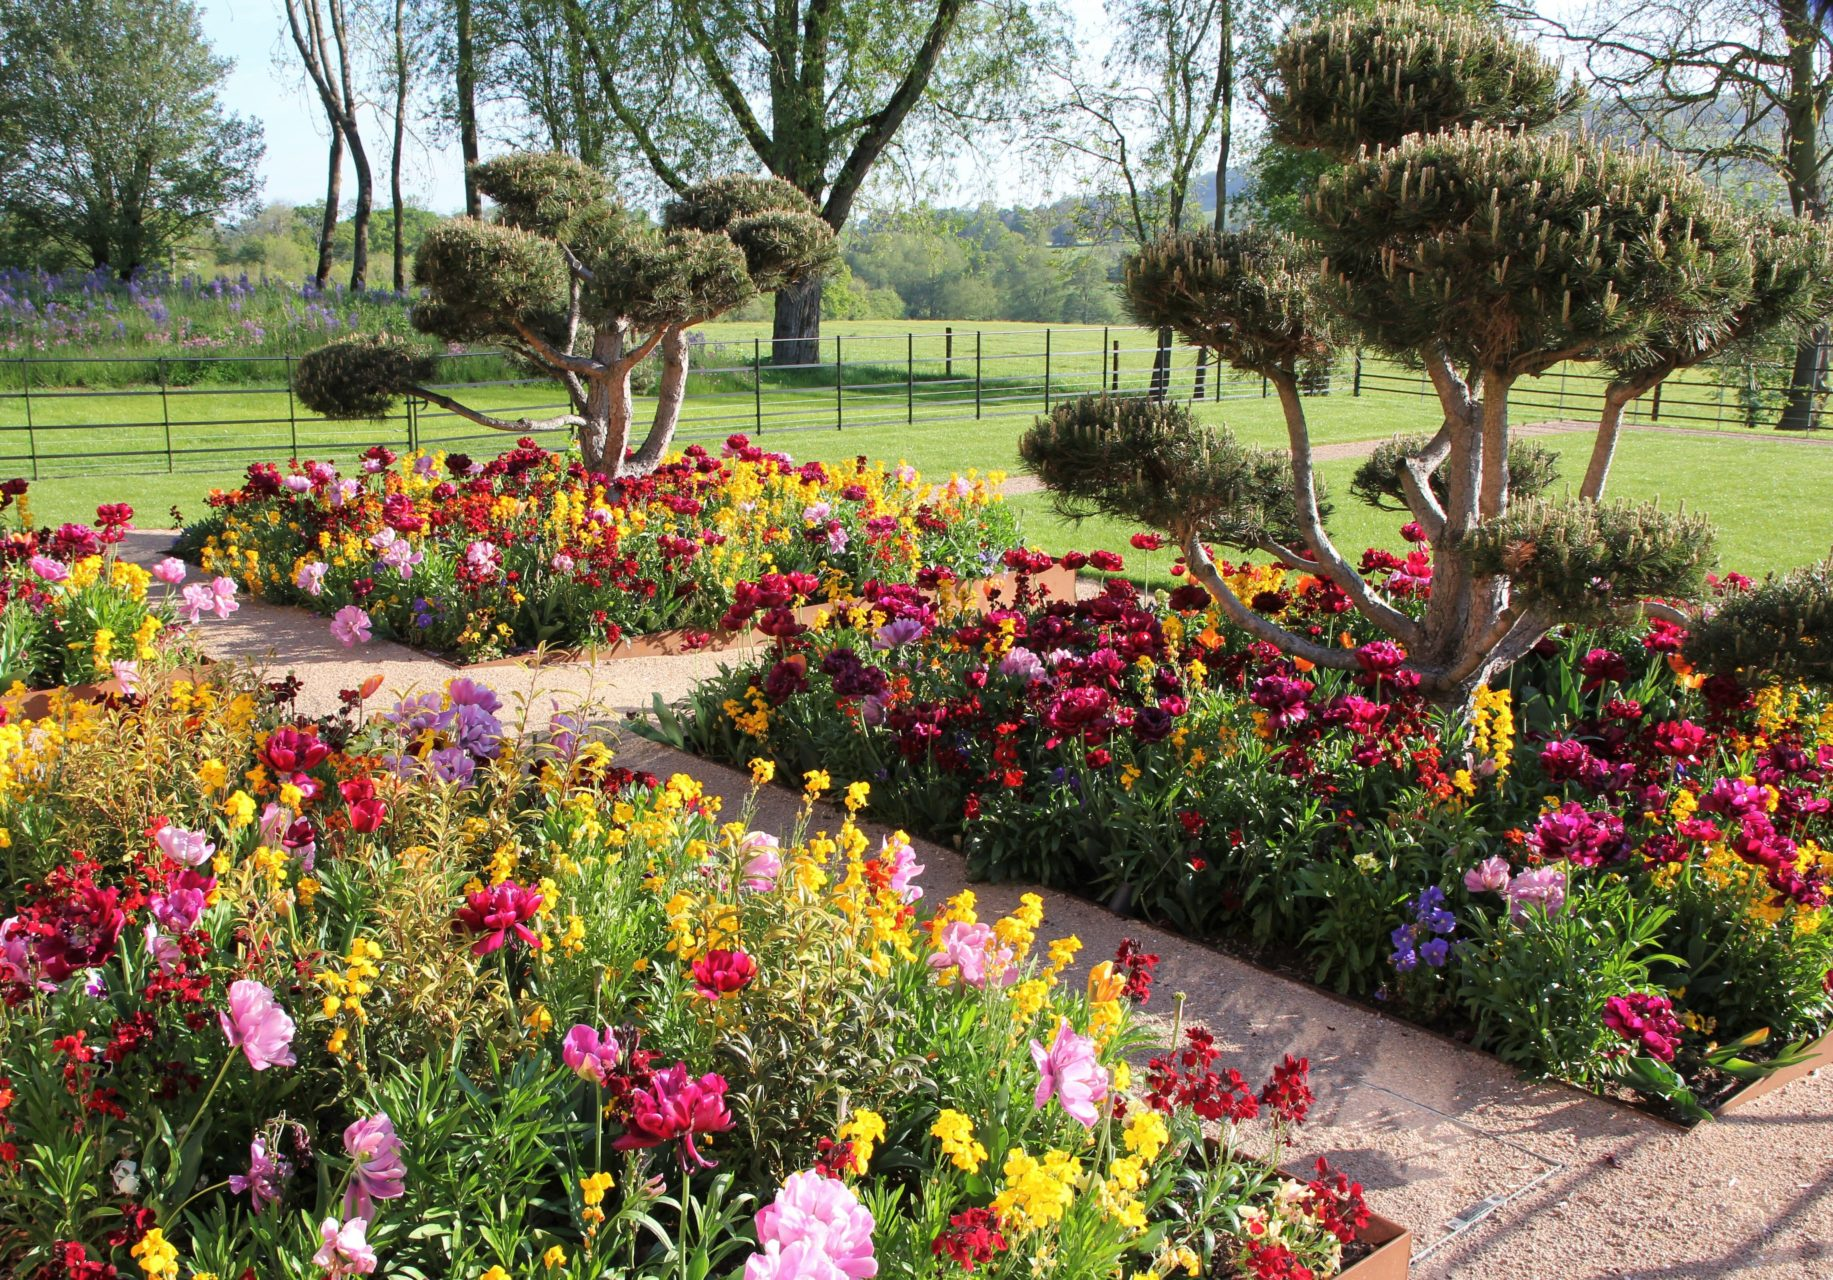 my clients loved colour so this area has a mass of colourful planting throughout the seasons